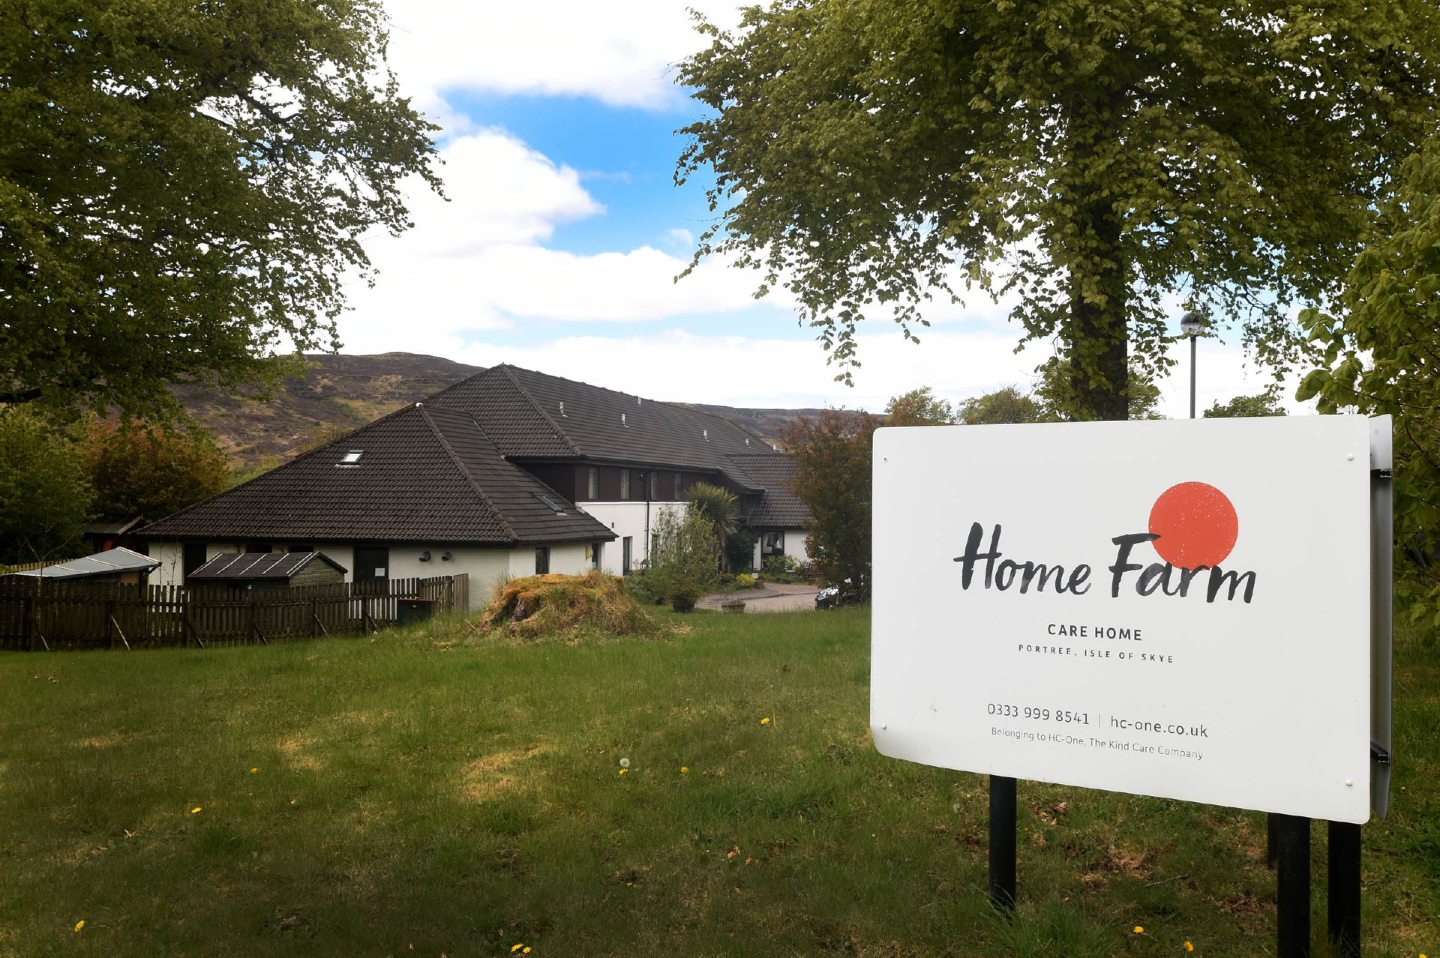 Home Farm Care Home in Portree, Skye.